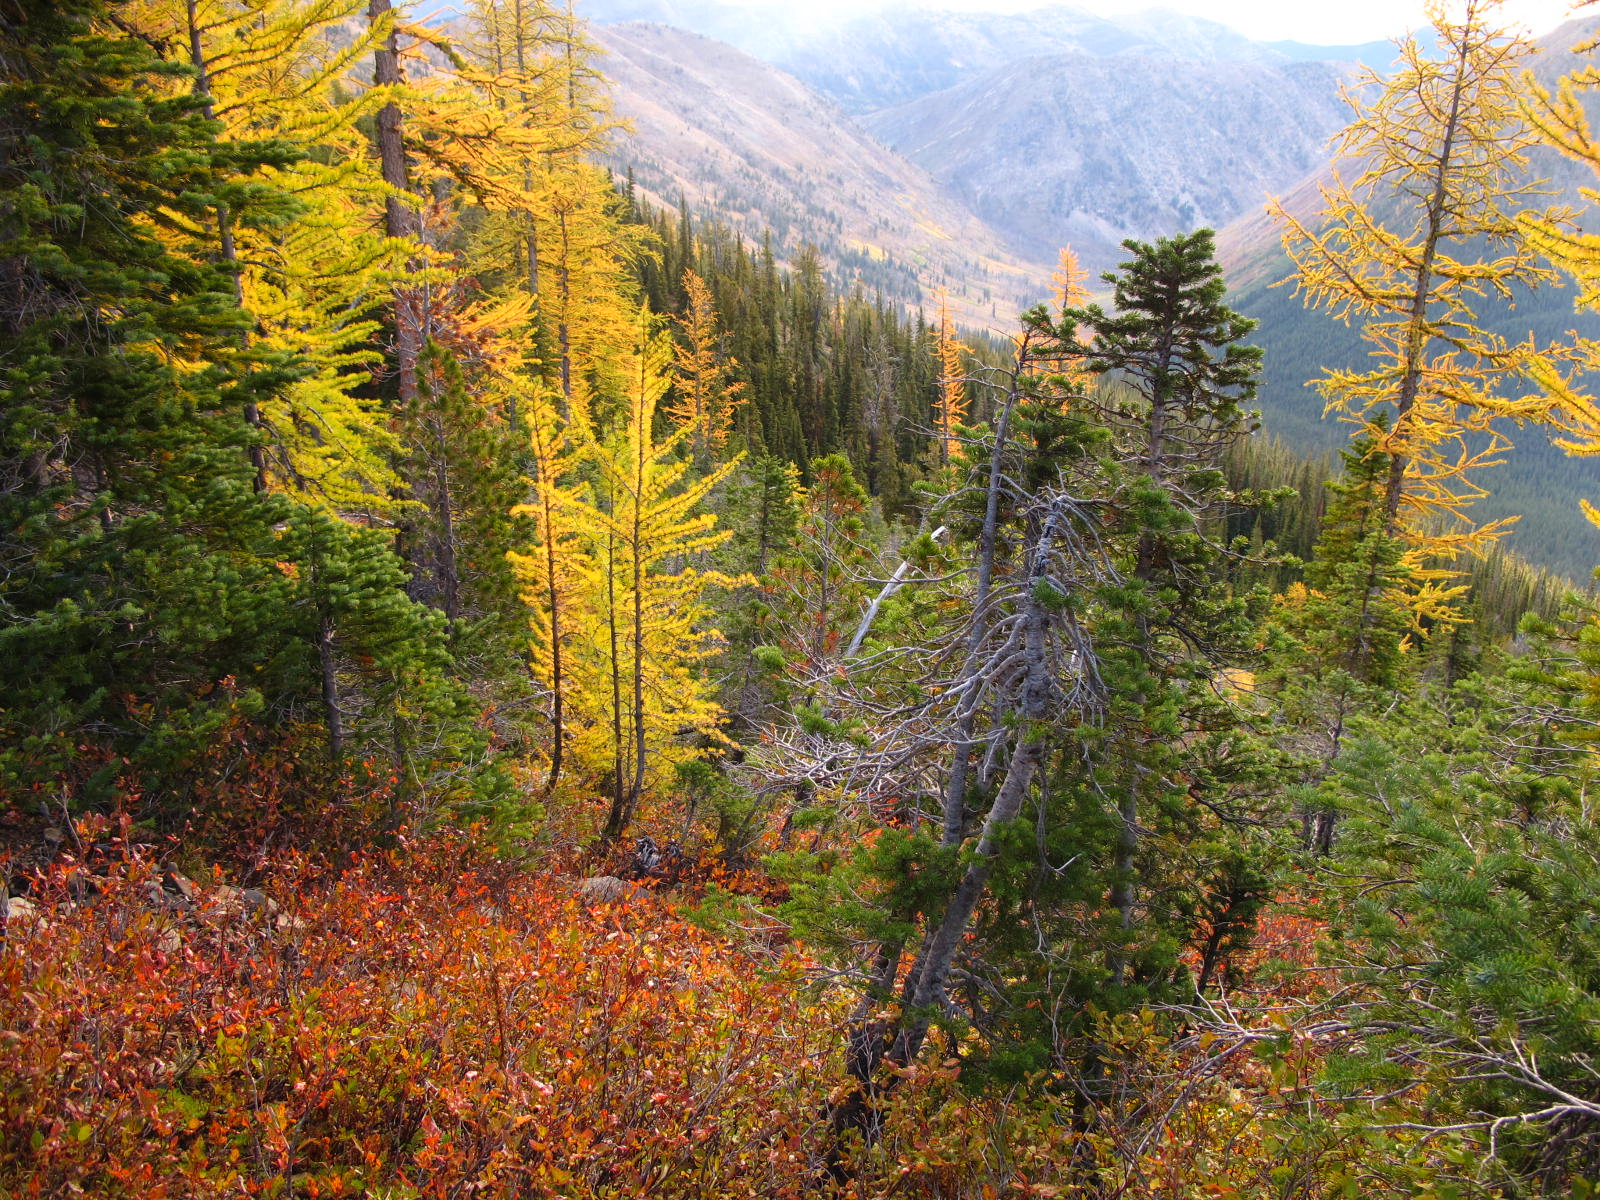 Image of fall colors: alpine larch, blueberry plants, and grasses. Near Grasshopper Pass along the PCT.